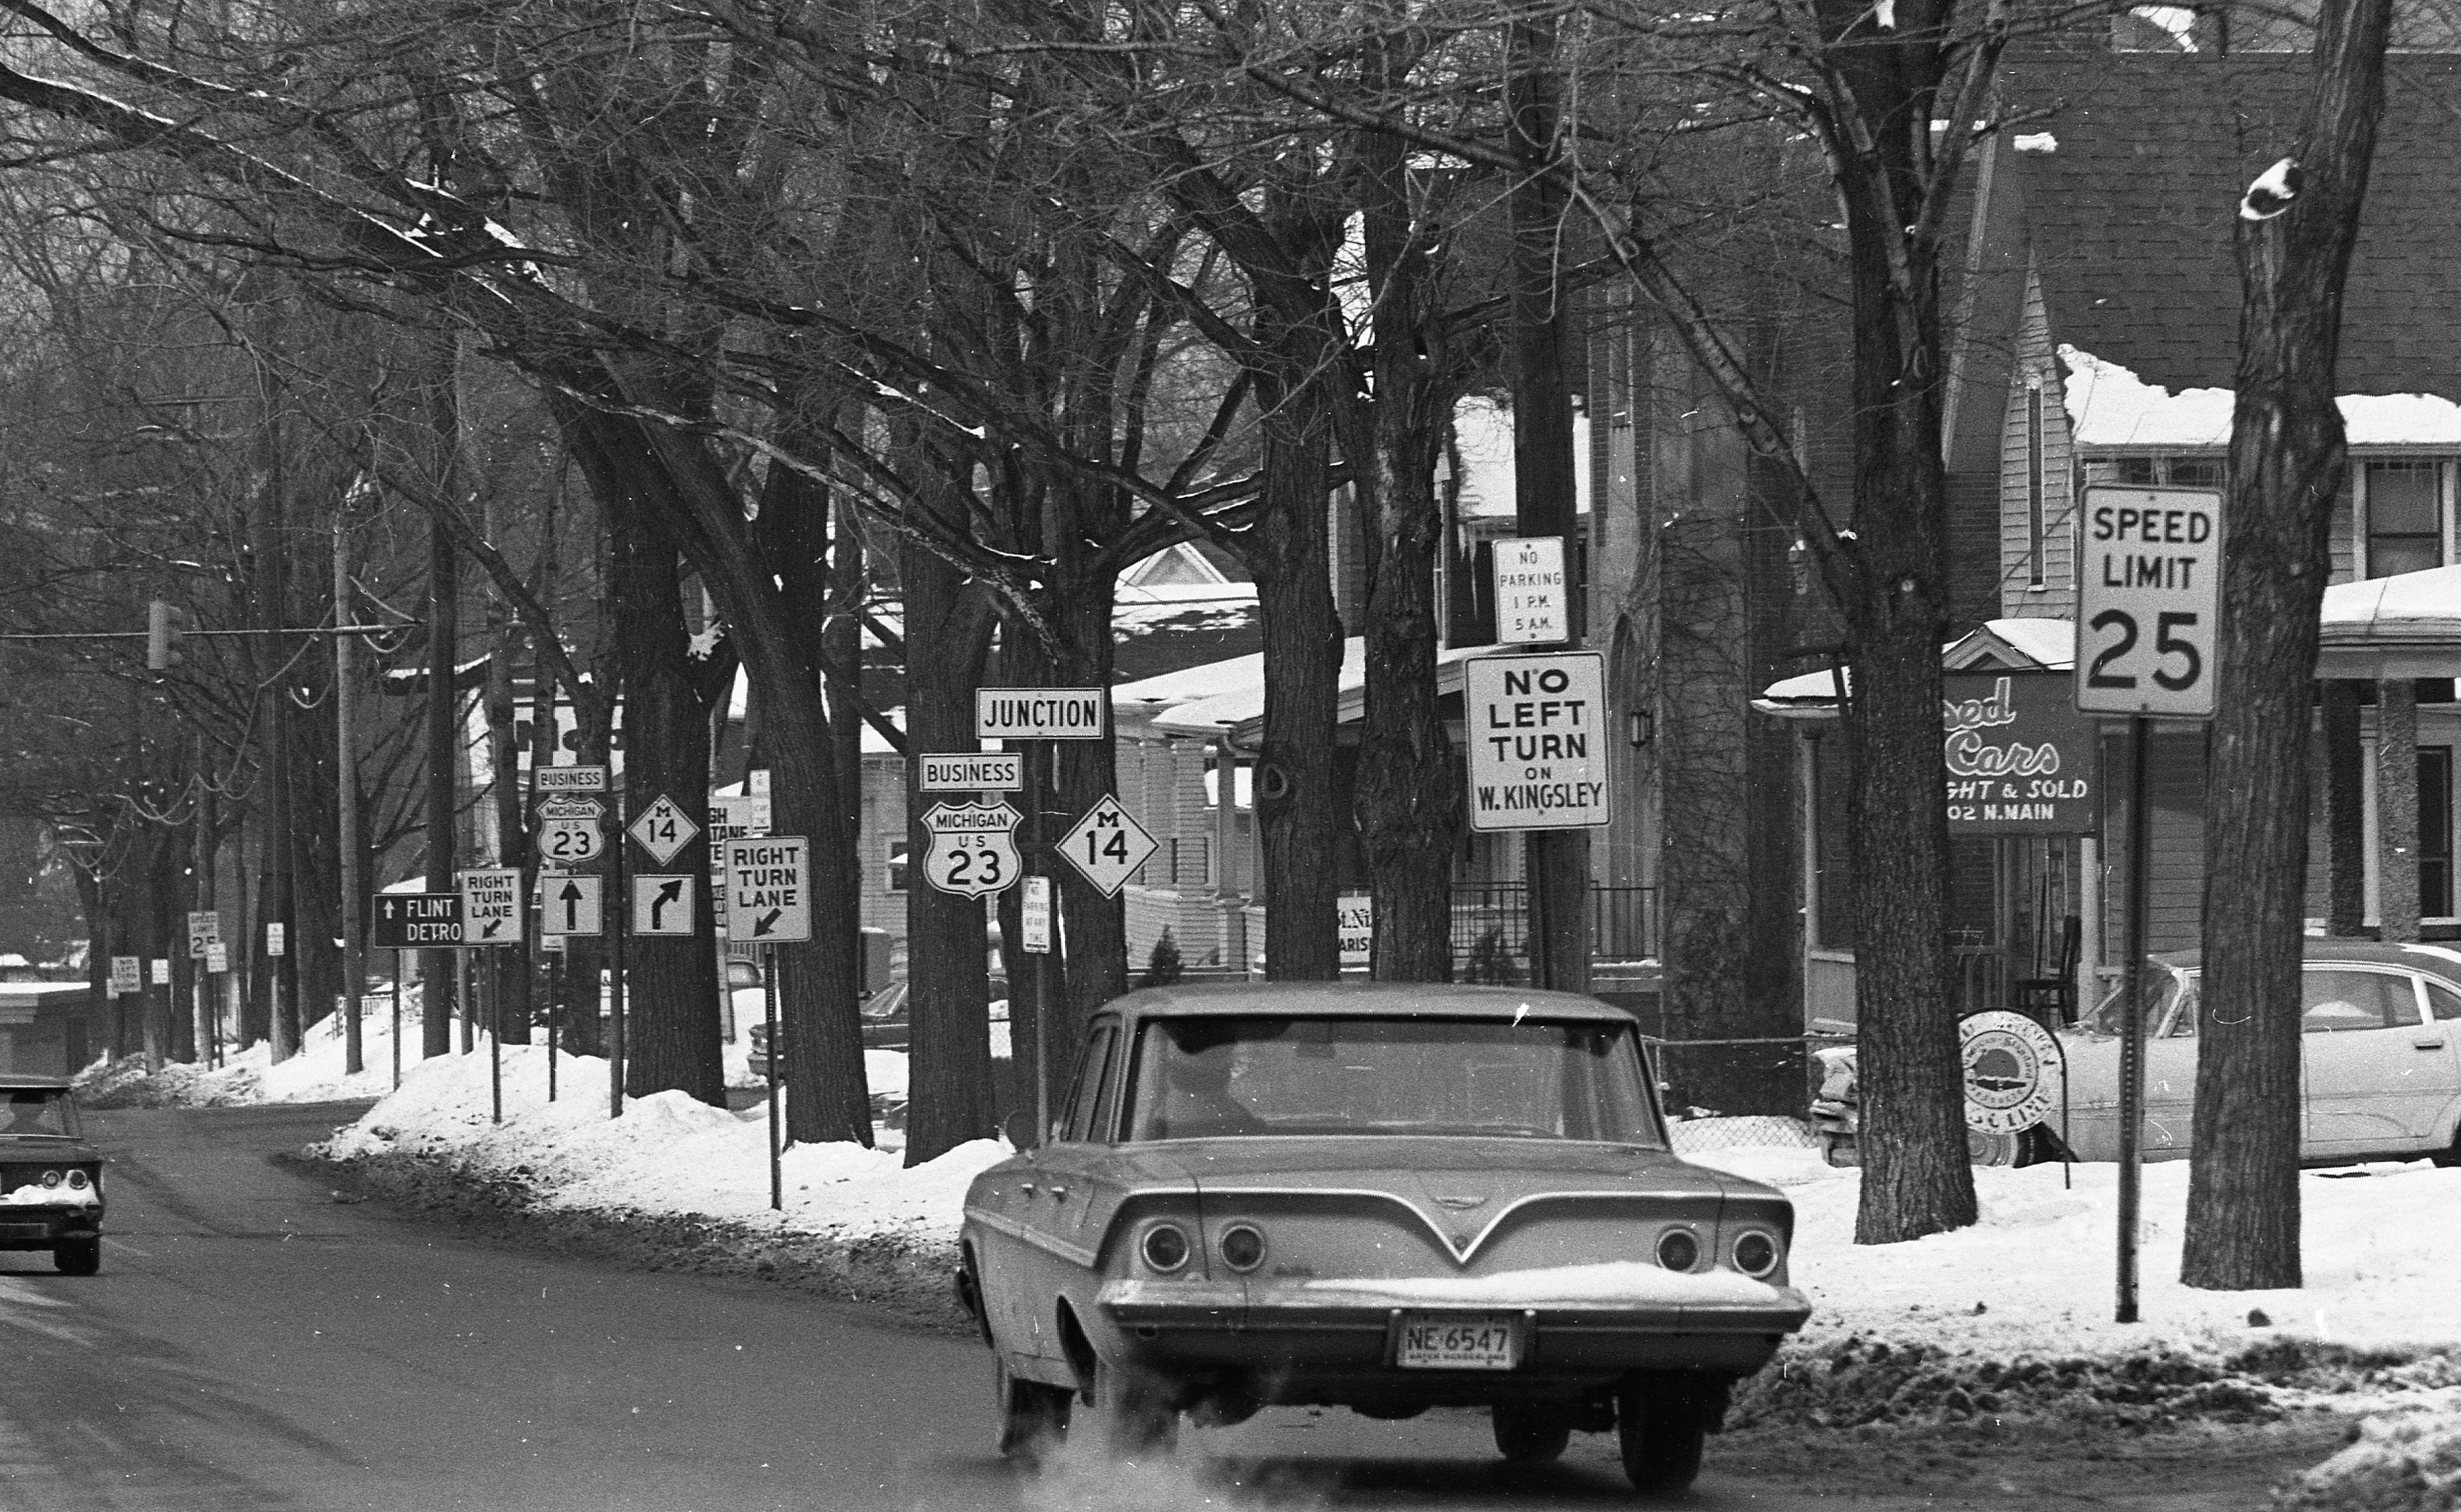 A Jungle of Traffic Signs on N Main Street, February 1963 image